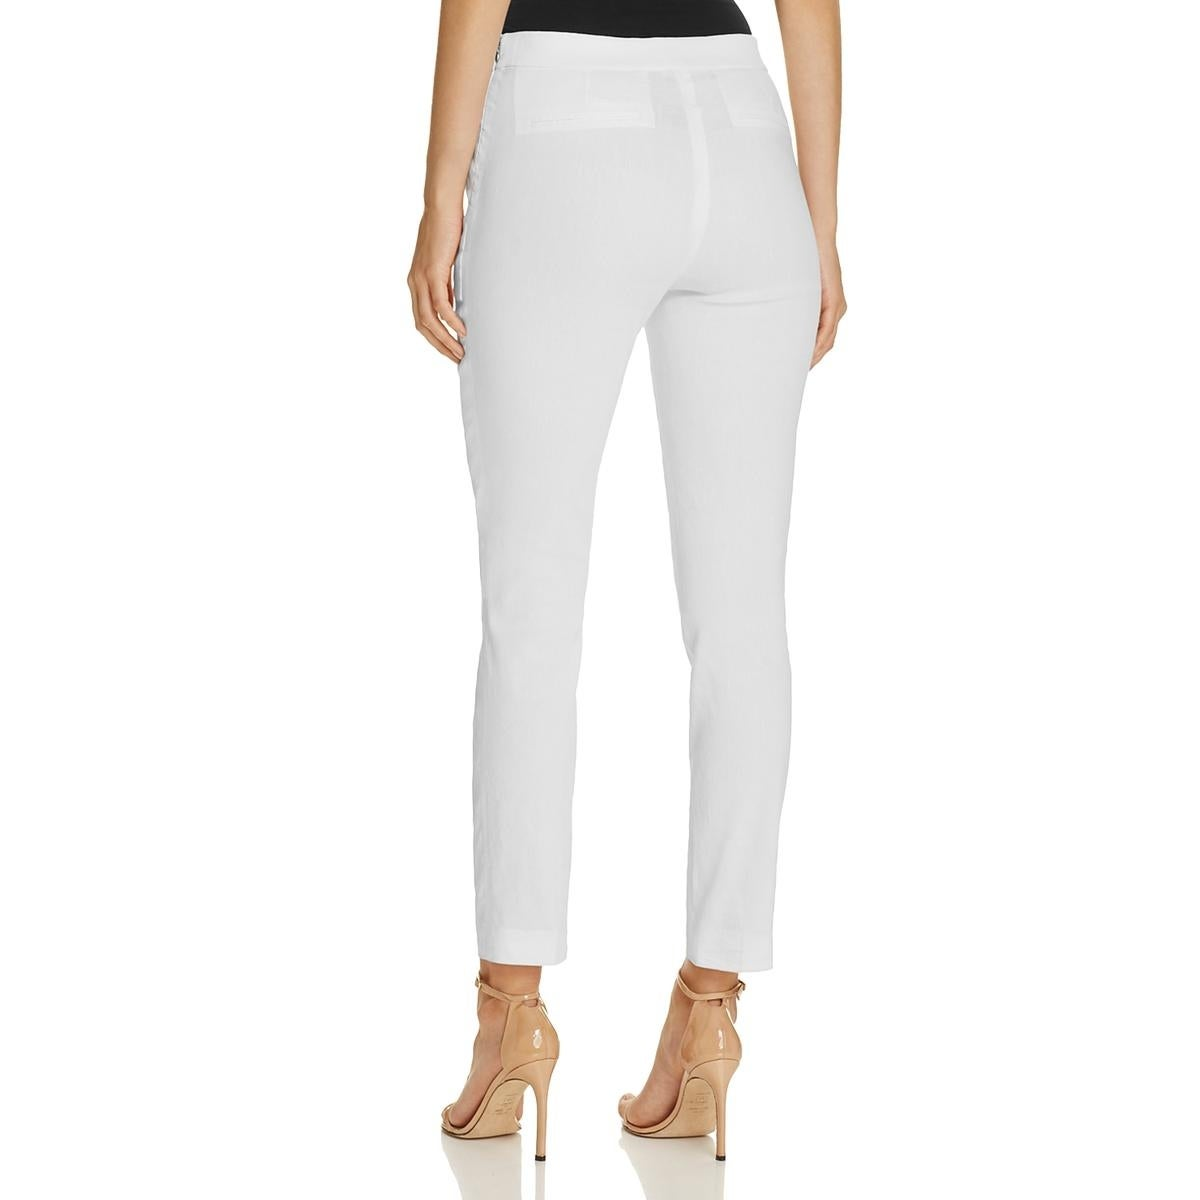 TROUSERS - Casual trousers Elie Tahari Big Sale Sale Online Outlet Shop For 100% Authentic Cheap Online Free Shipping Outlet Locations x3nyDT7